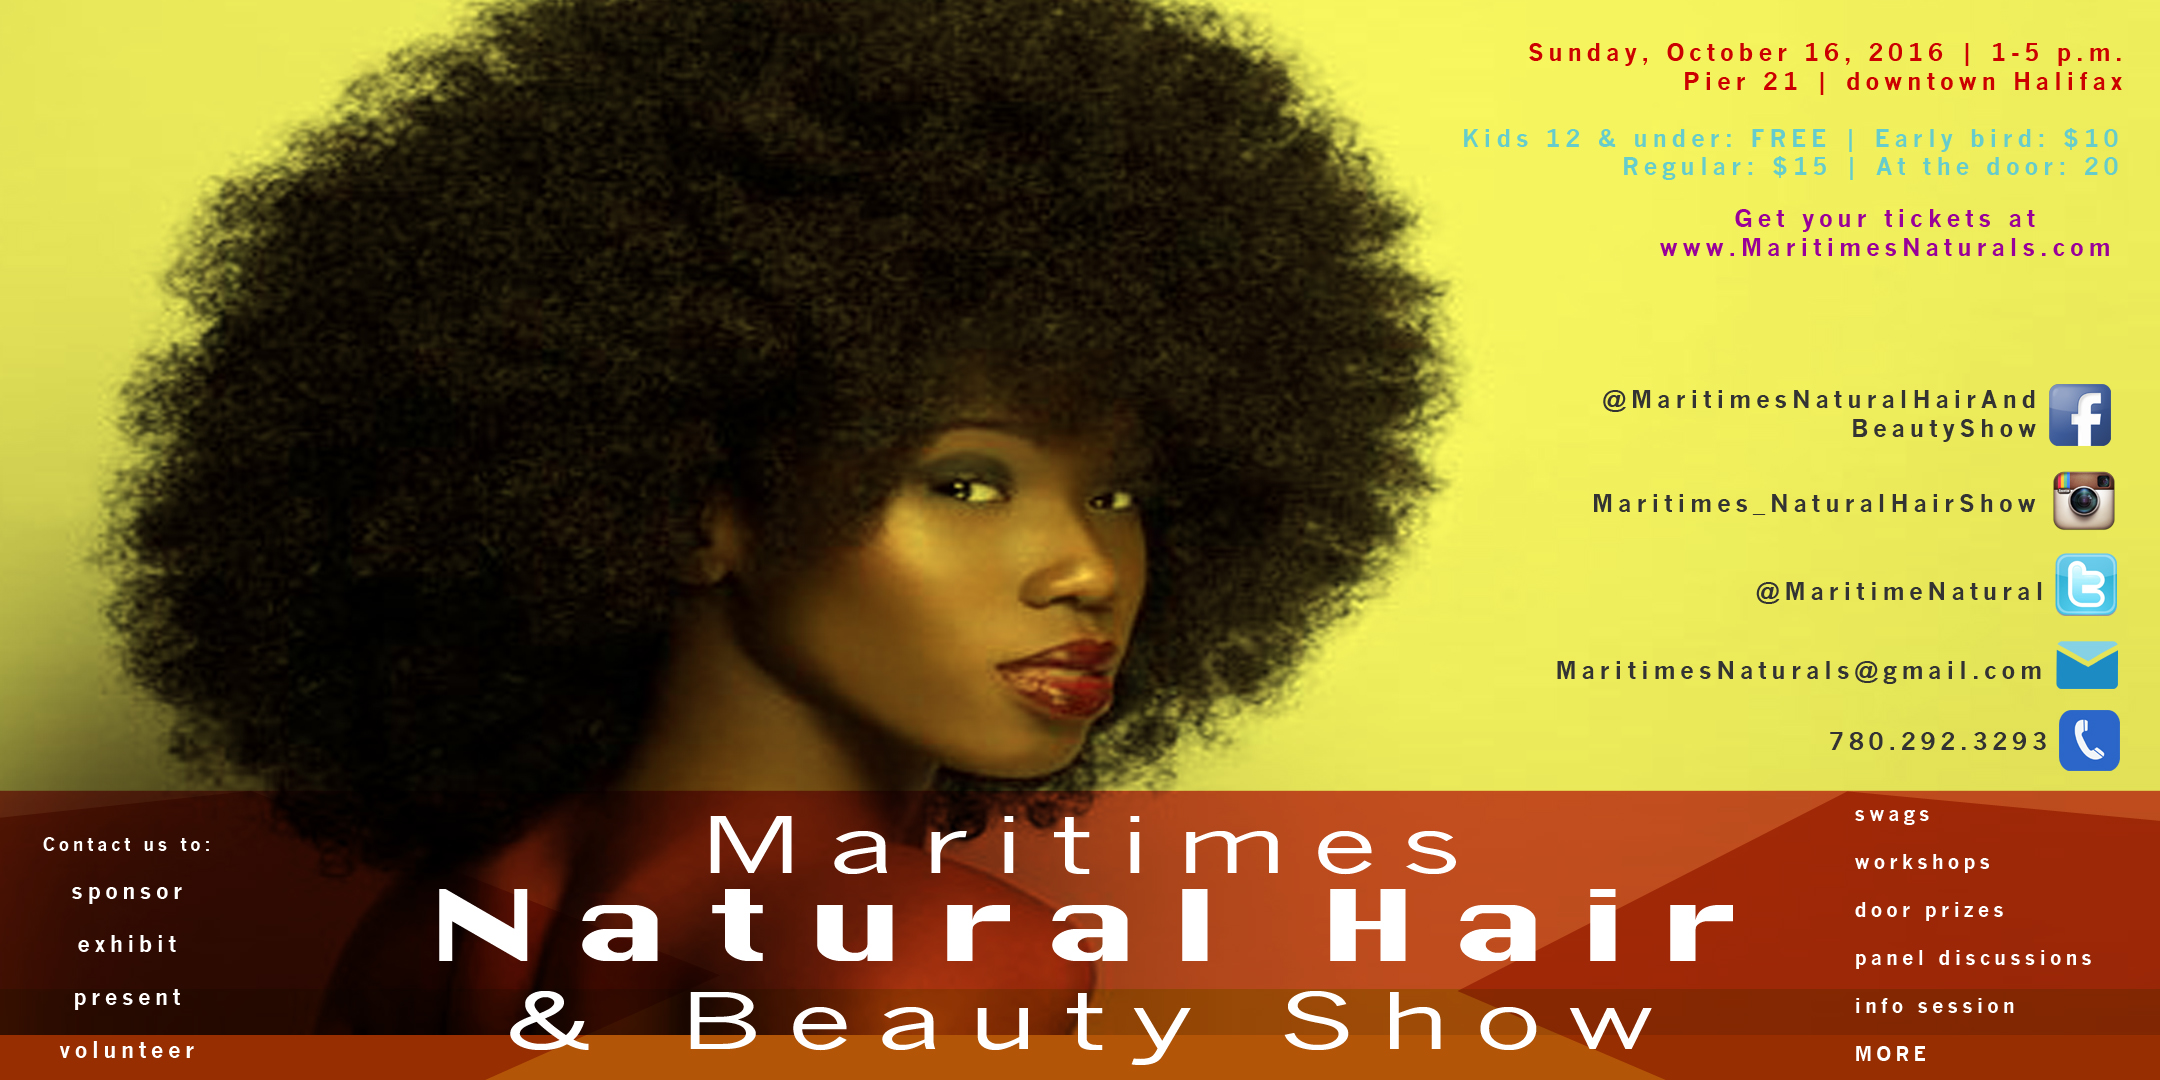 Maritimes Natural Hair & Beauty Show